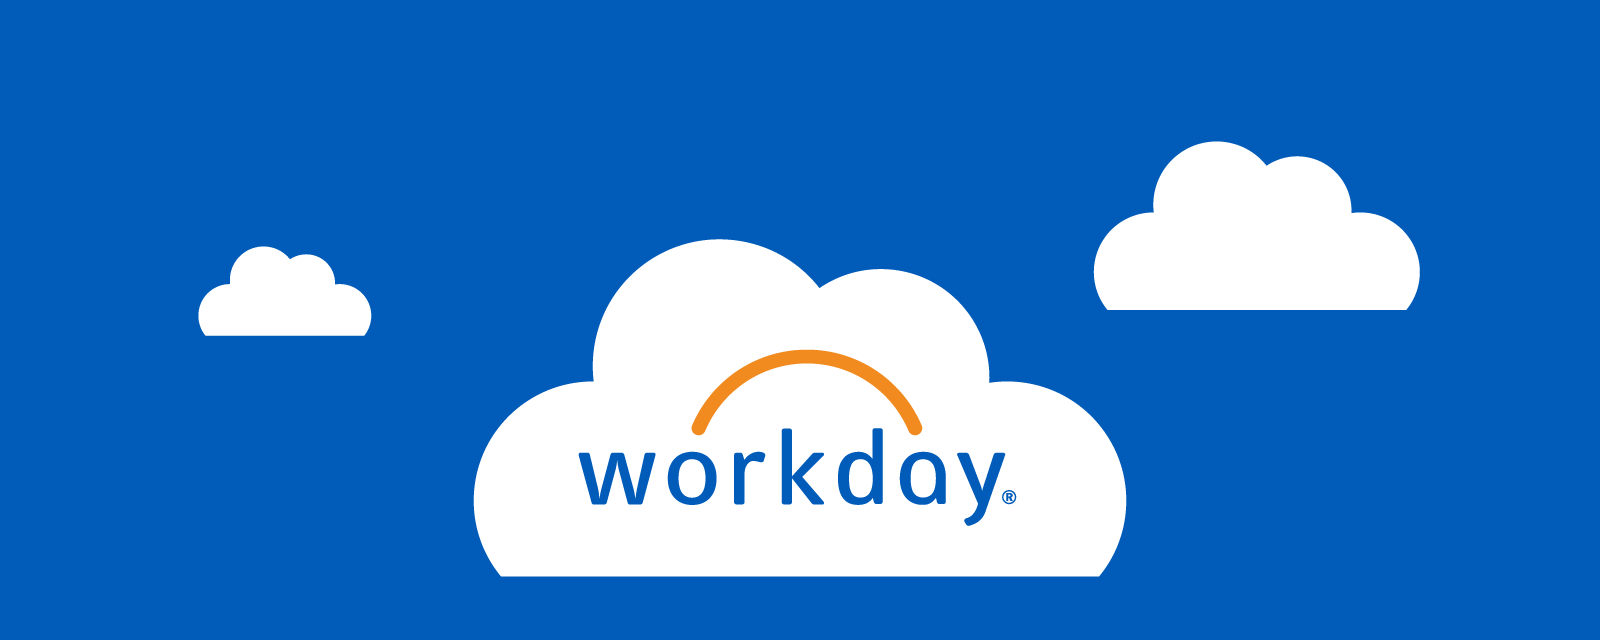 Q&A: The Latest on the Open Workday Cloud Platform - Workday Blog